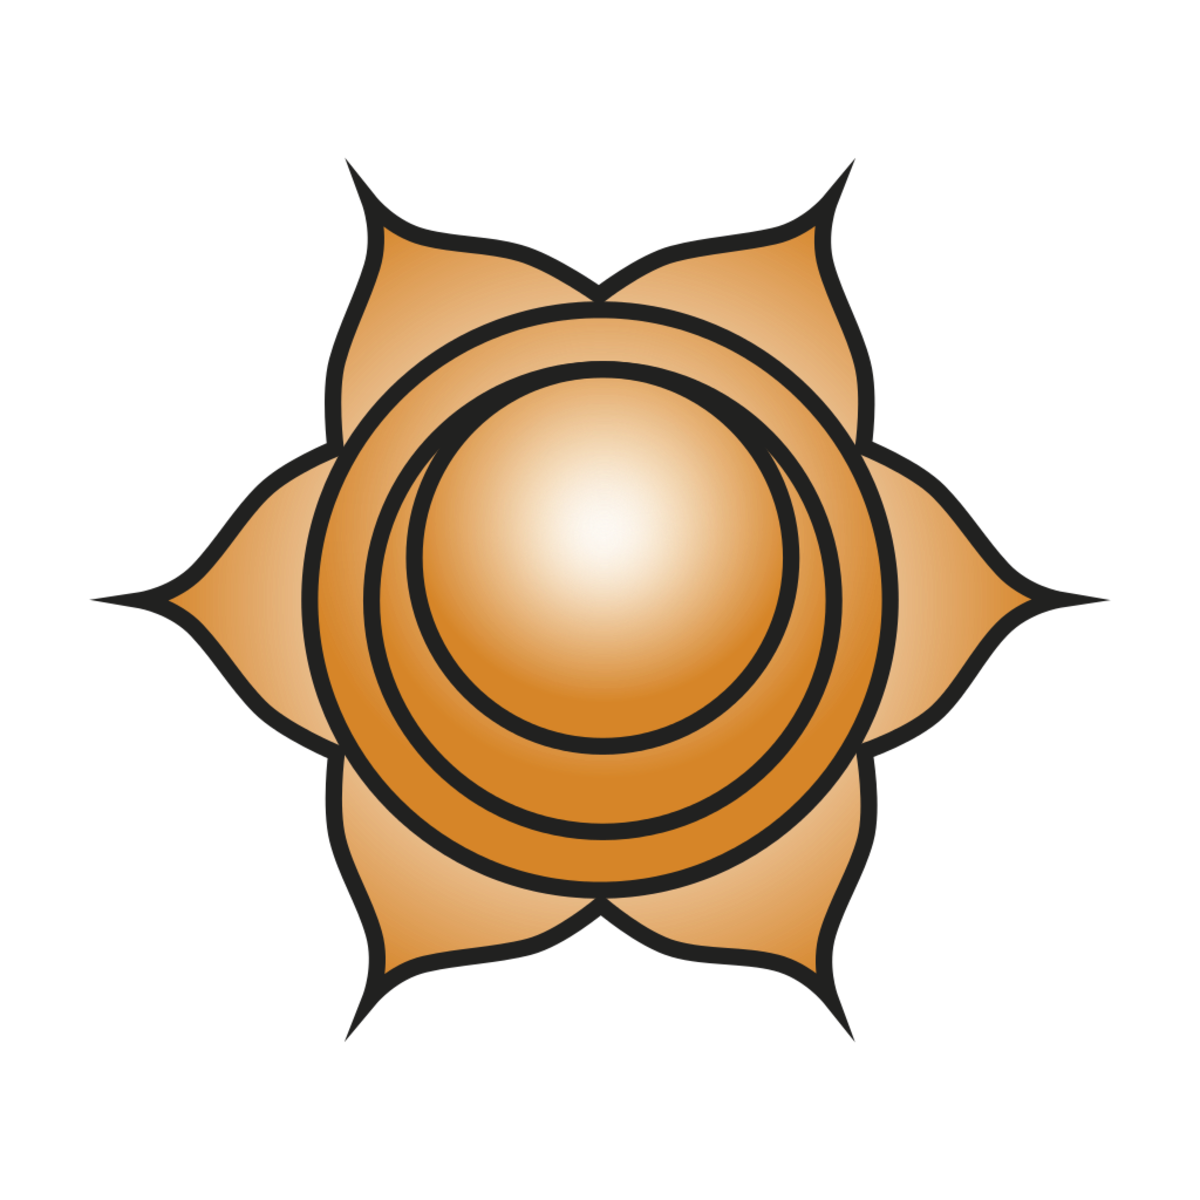 Sacral Chakra and Your Dreams